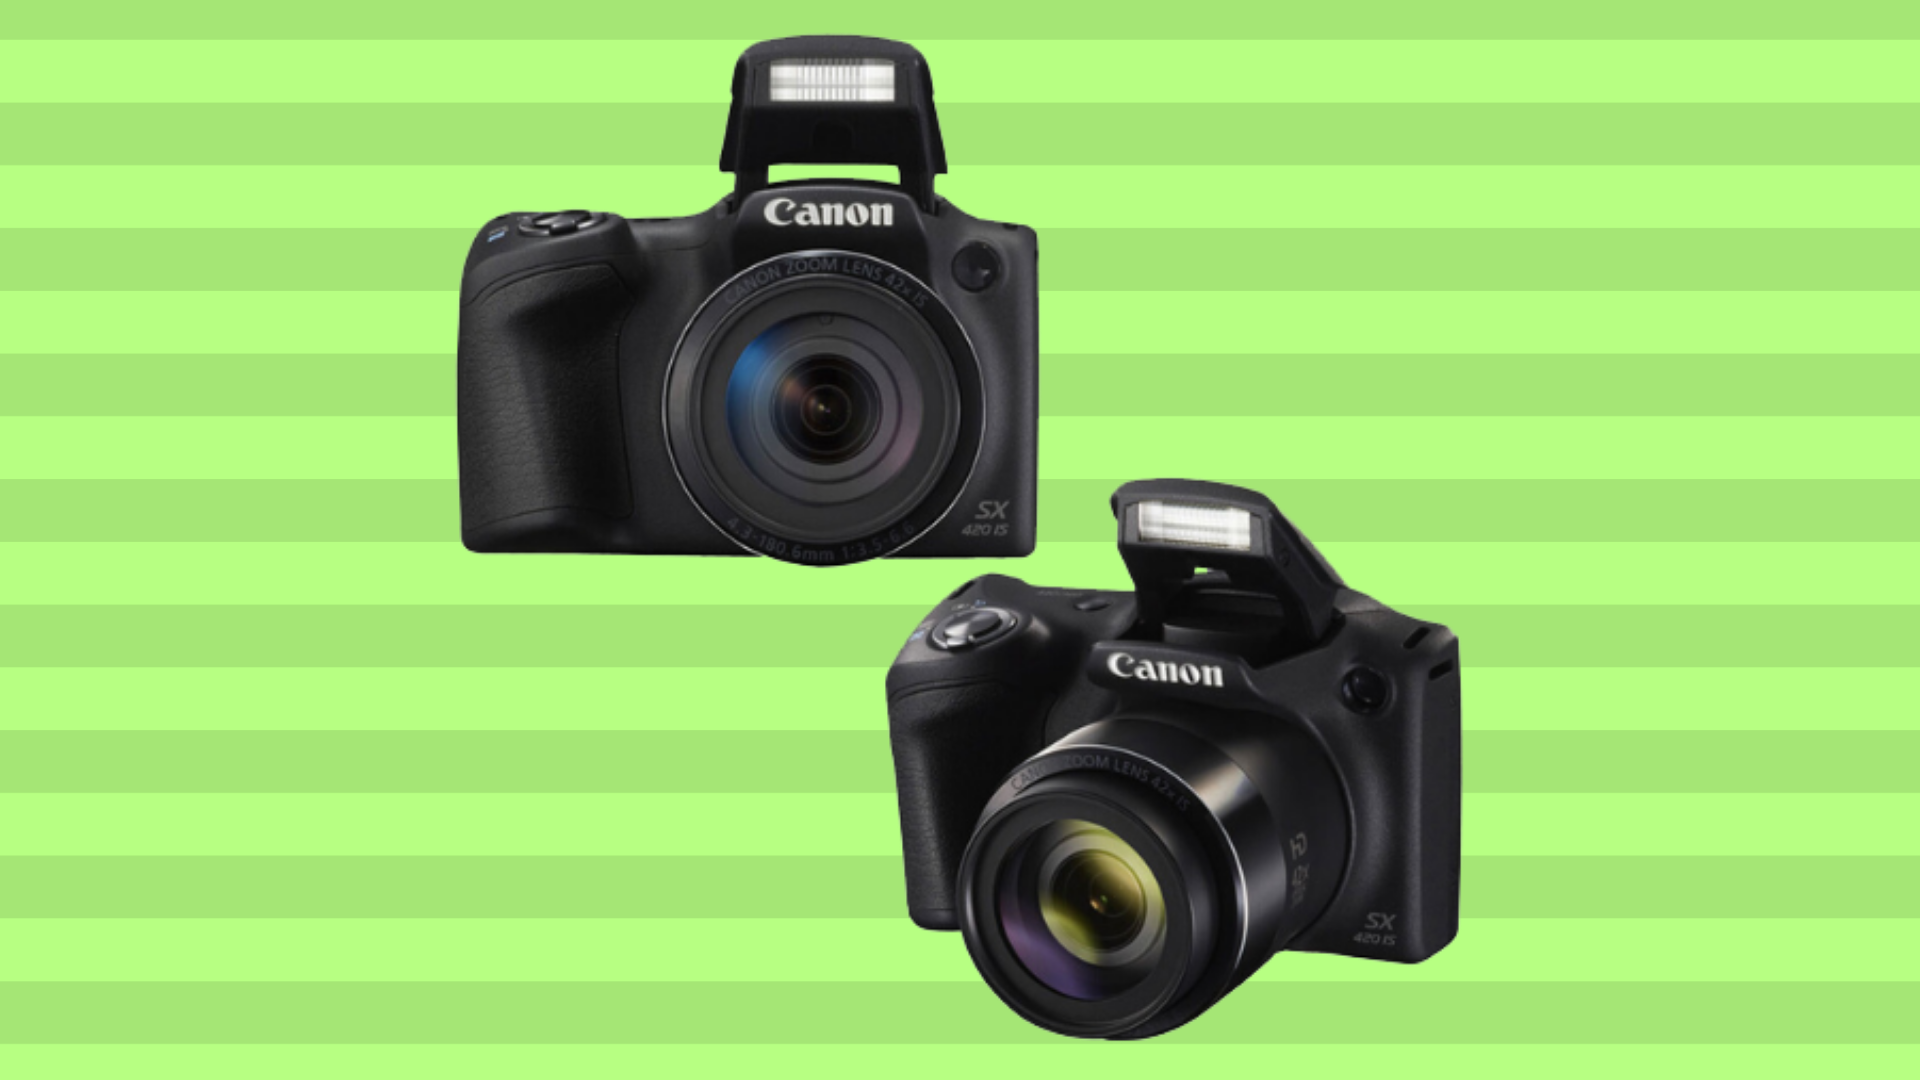 This breathtaking Canon point-and-shoot digital camera is a steal at nearly 50 percent off